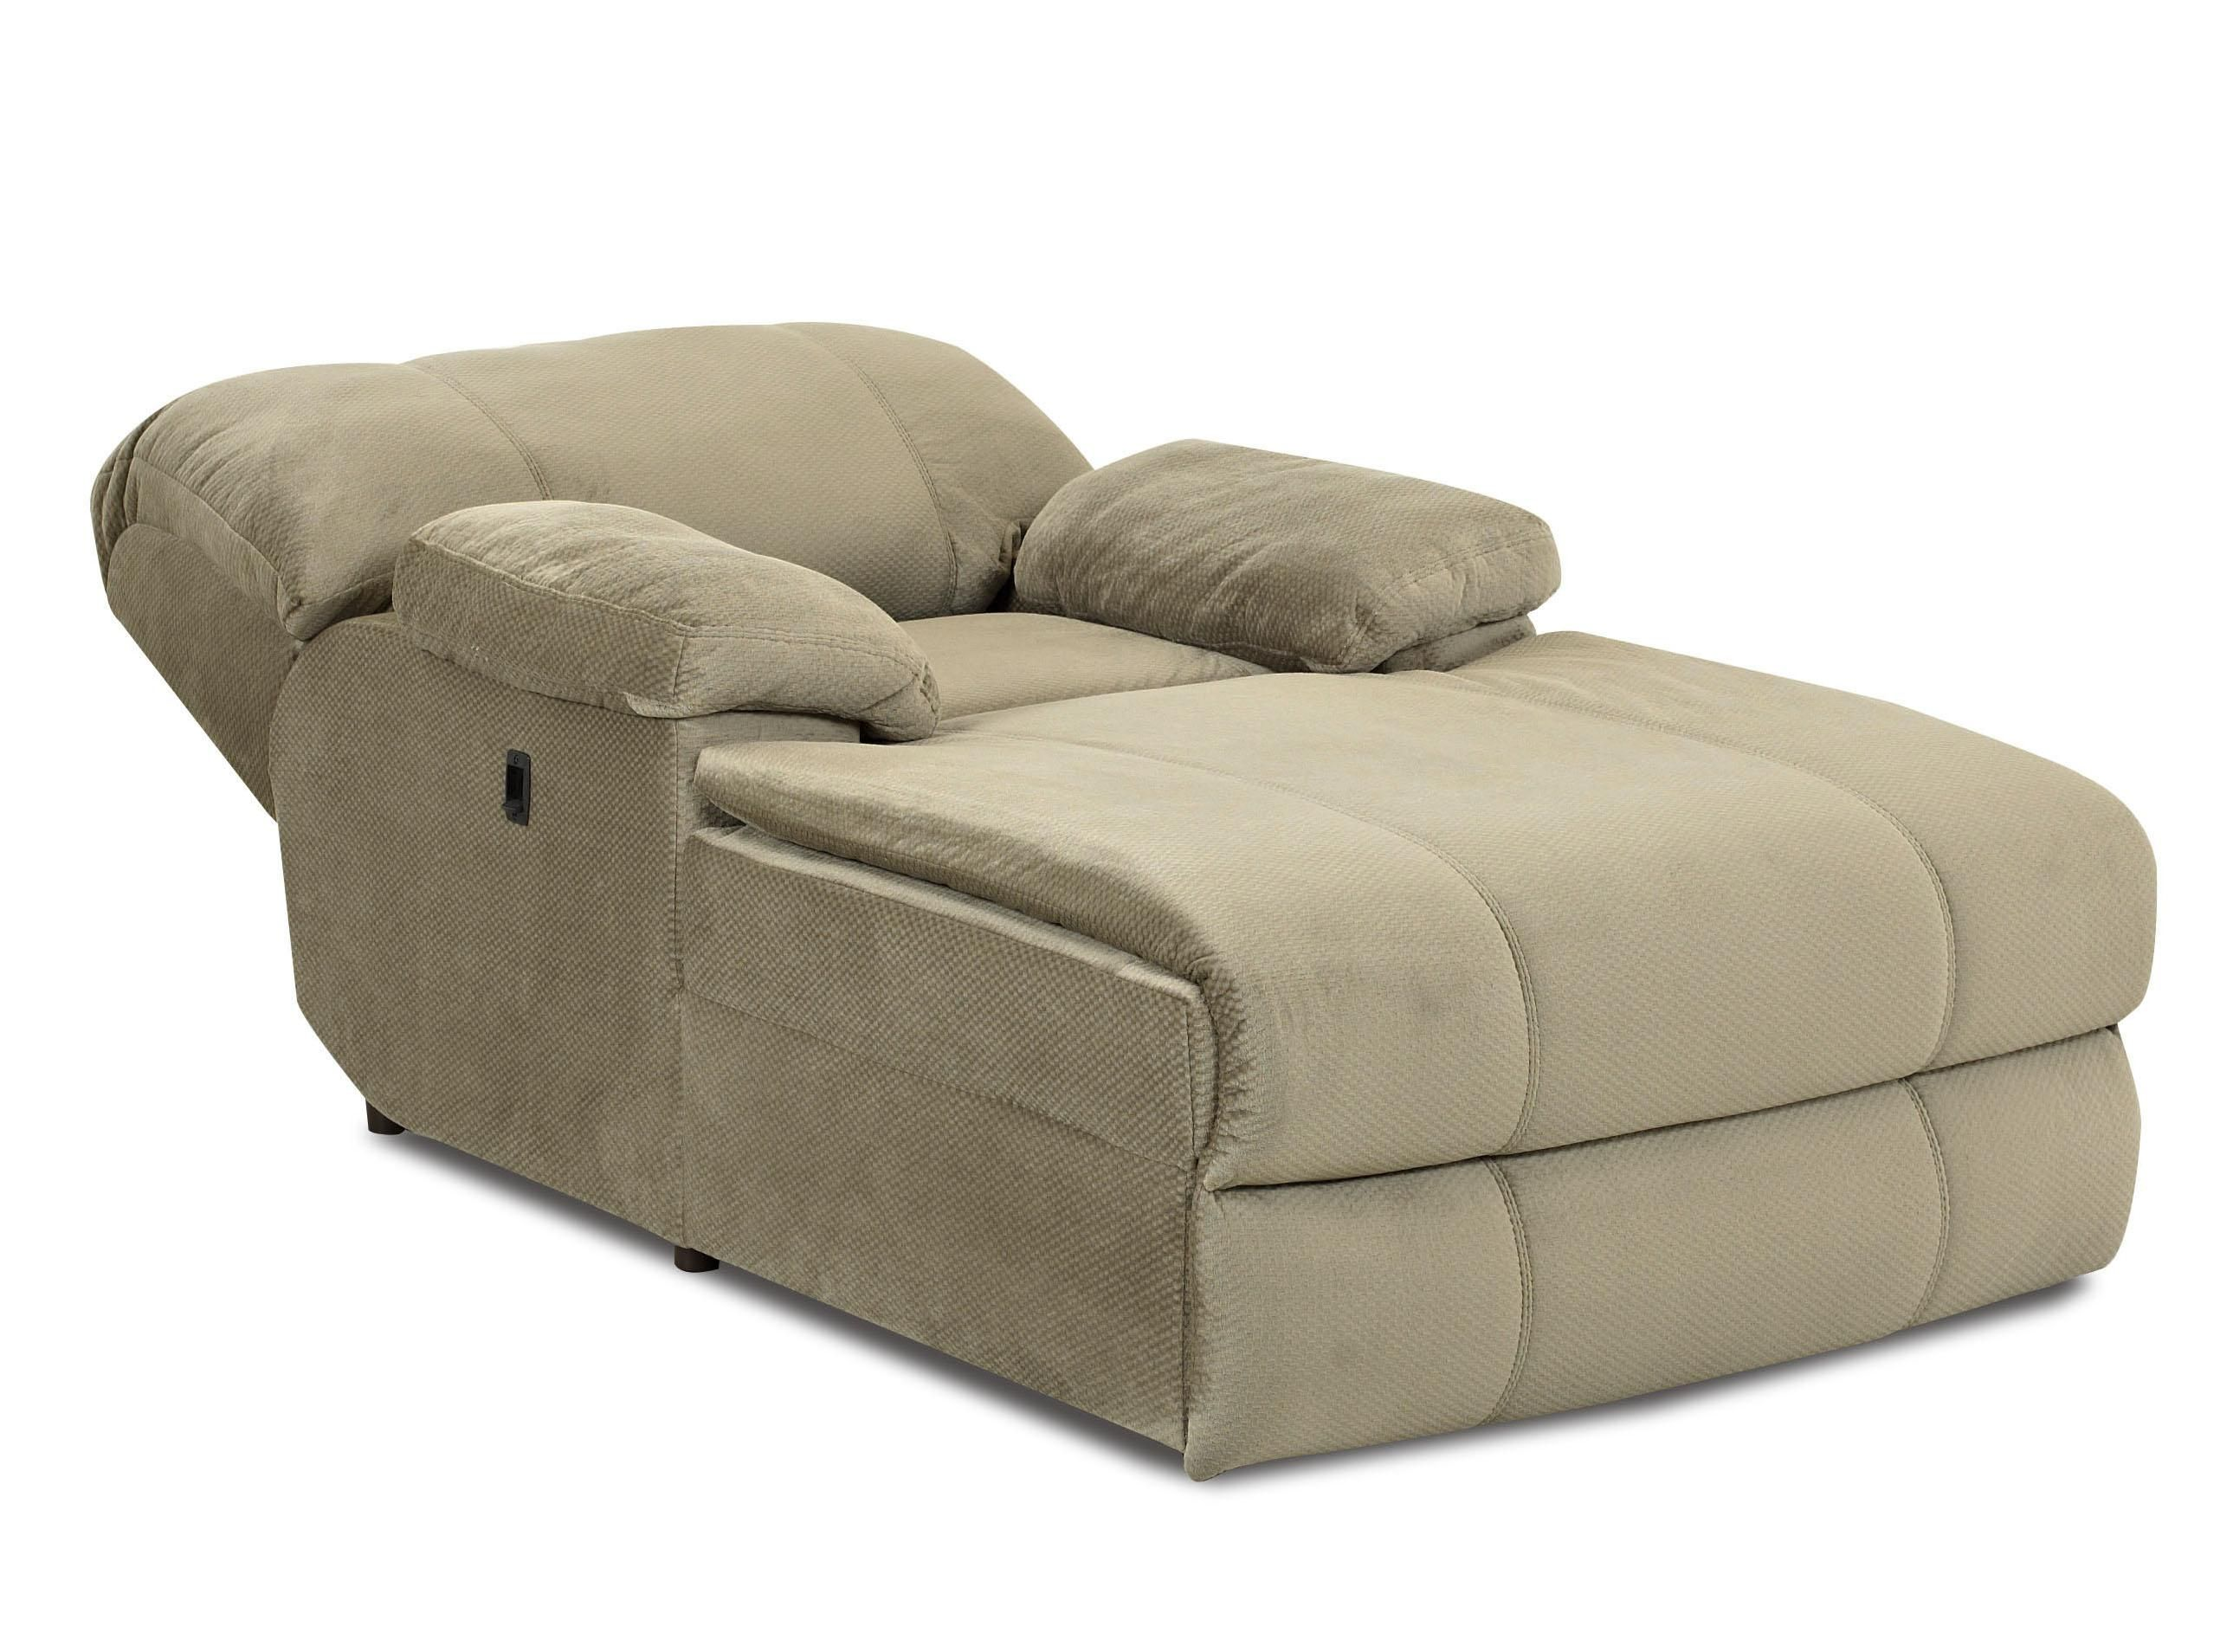 - Indoor Oversized Chaise Lounge Kensington Reclining Chaise